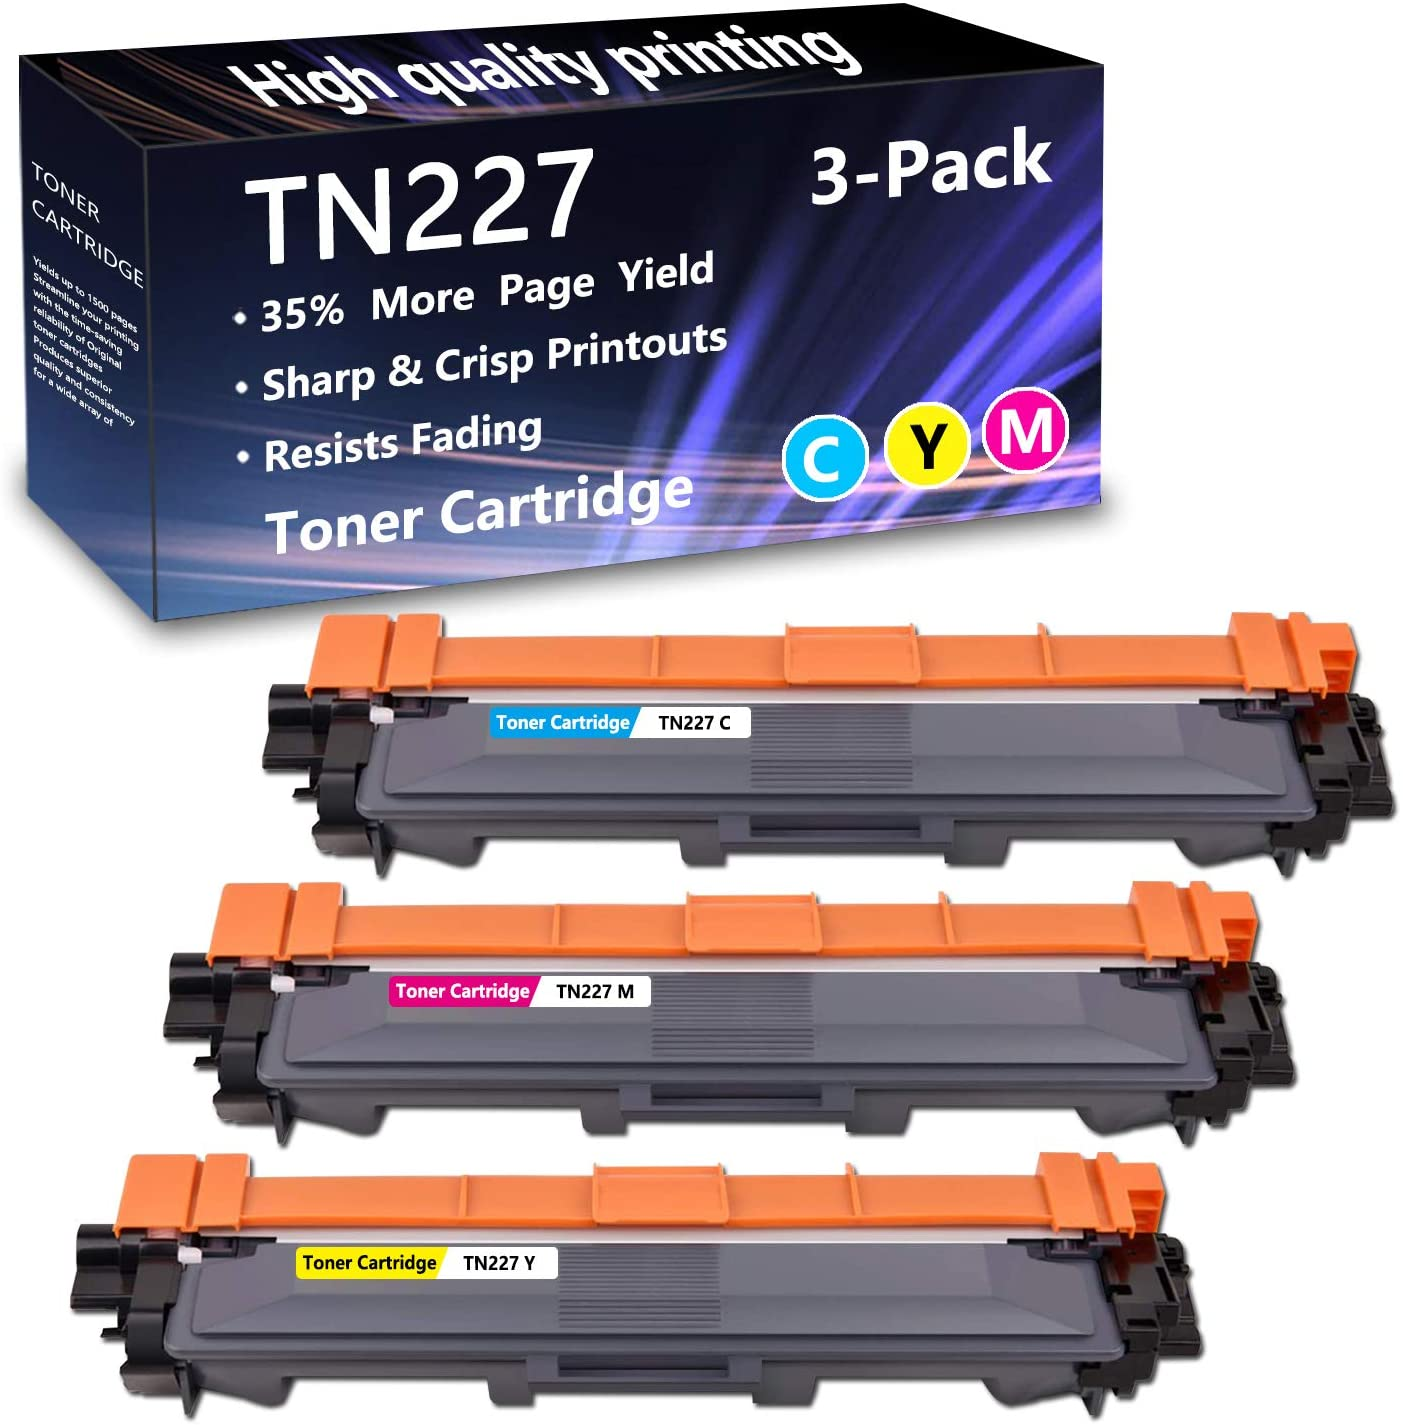 3 Pack (1C+1M+1Y) TN227 Toner Cartridge Replacement for Brother MFC-L3770CDW L3710CW L3750CDW L3730CDW HL-3210CW 3230CDW 3270CDW 3230CDN 3290CDW DCP-L3510CDW L3550CDW Printers,Sold by AlToner.